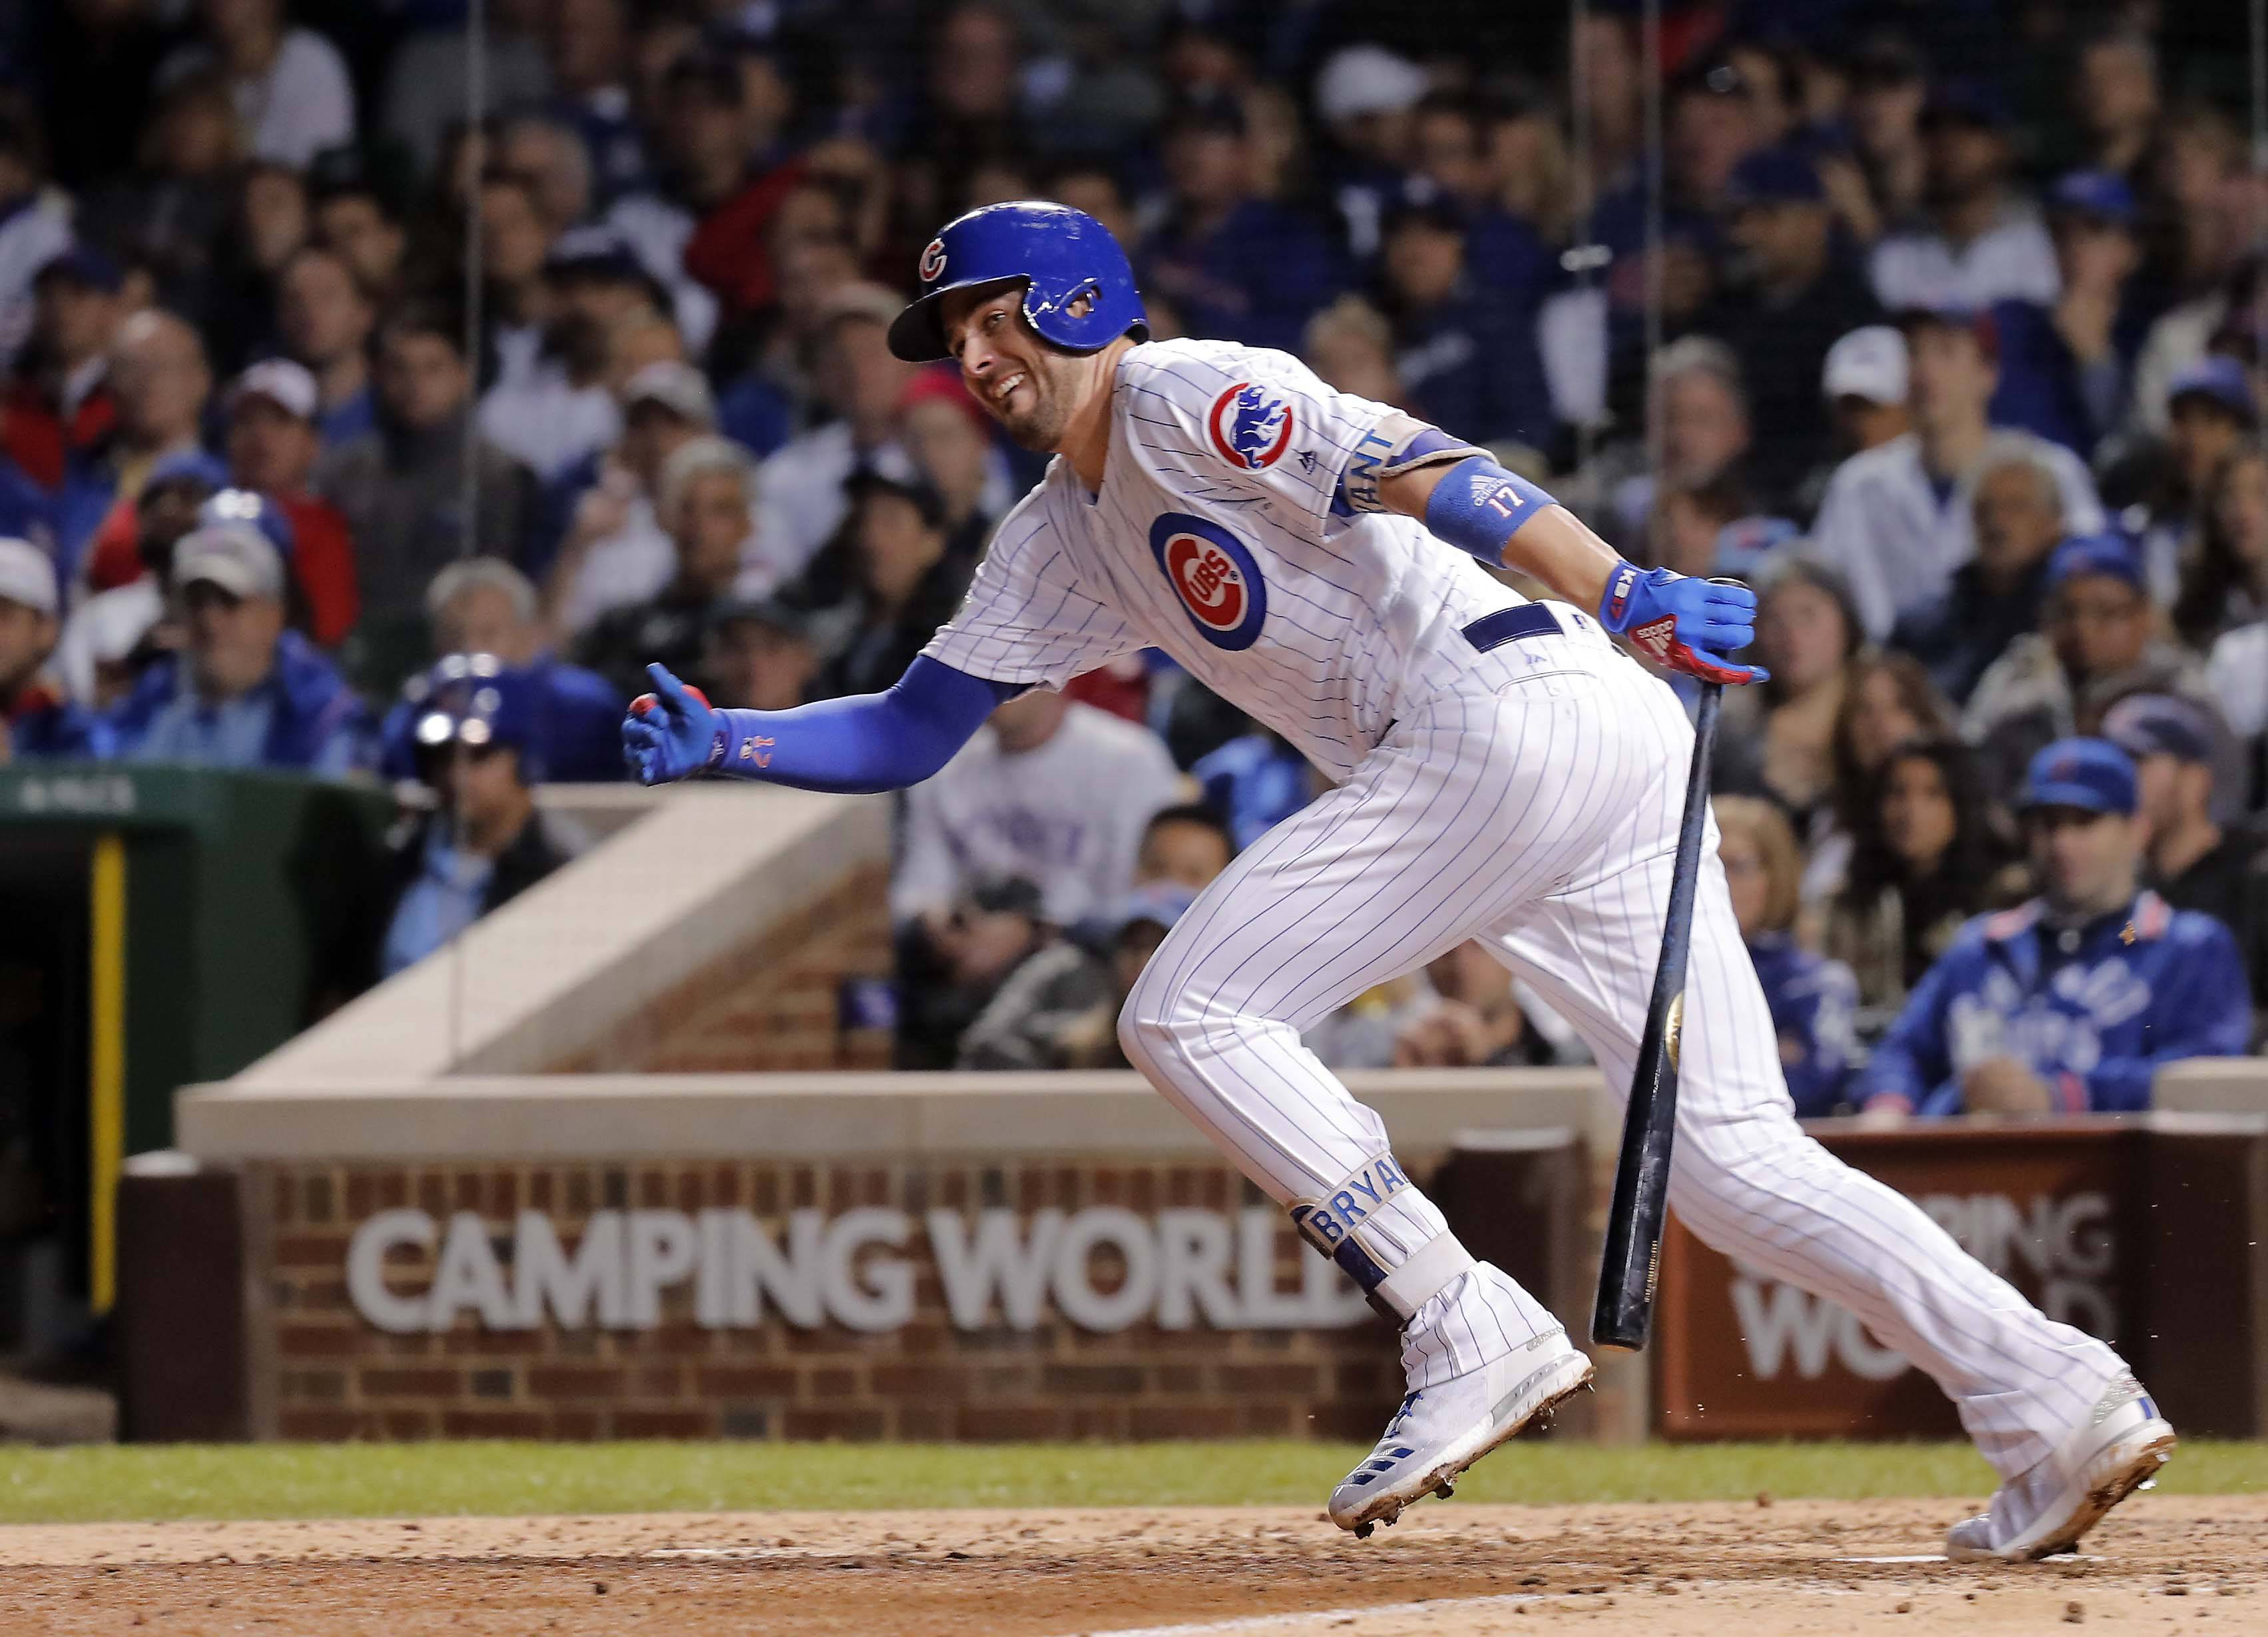 Despite power dip, Kris Bryant putting up big numbers for Chicago Cubs